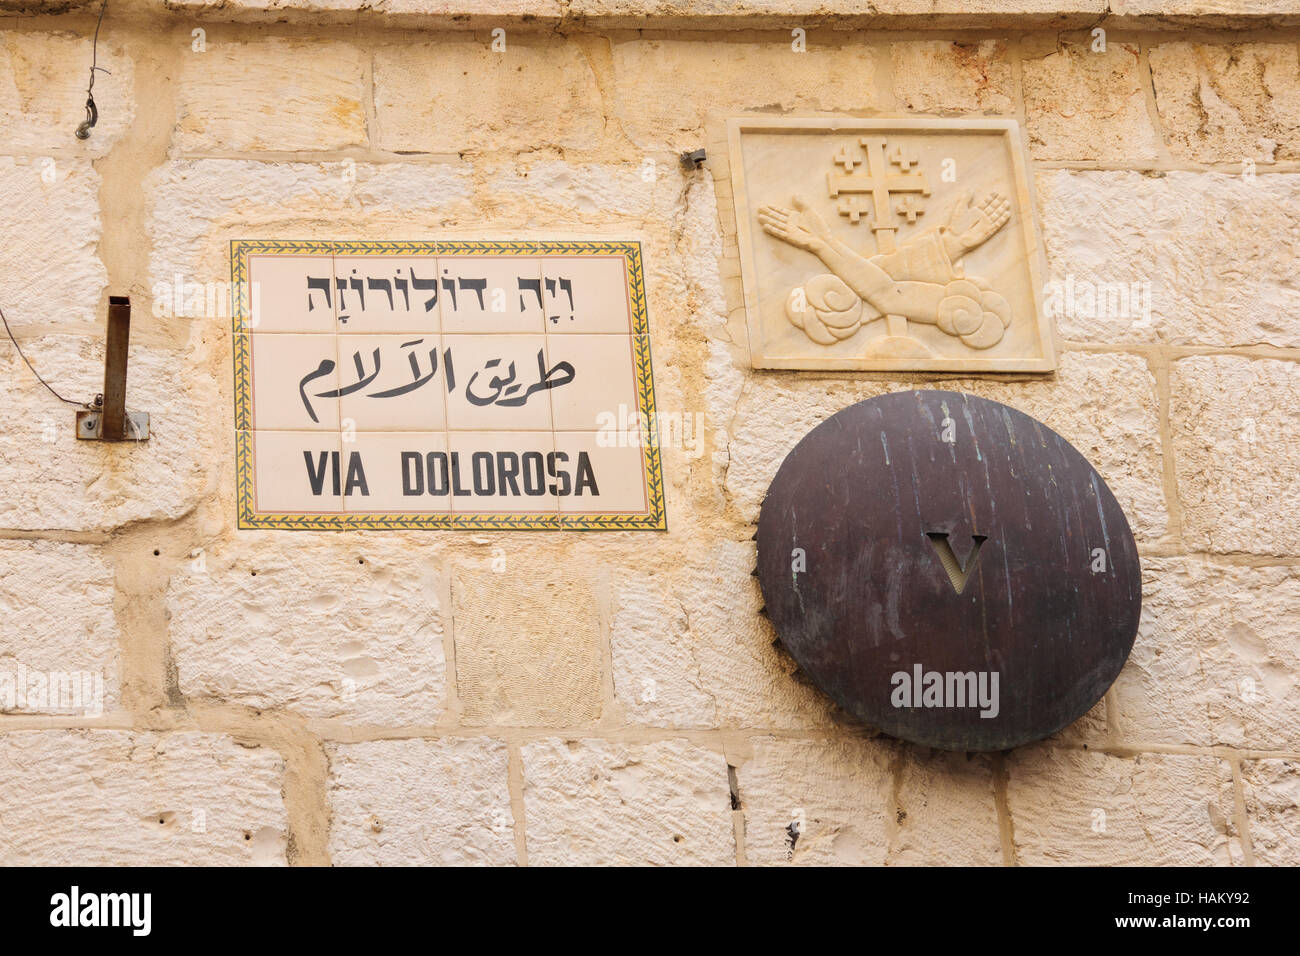 A mark of station 5 of the Via Dolorosa, and a street sign, in the old city of Jerusalem, Israel Stock Photo